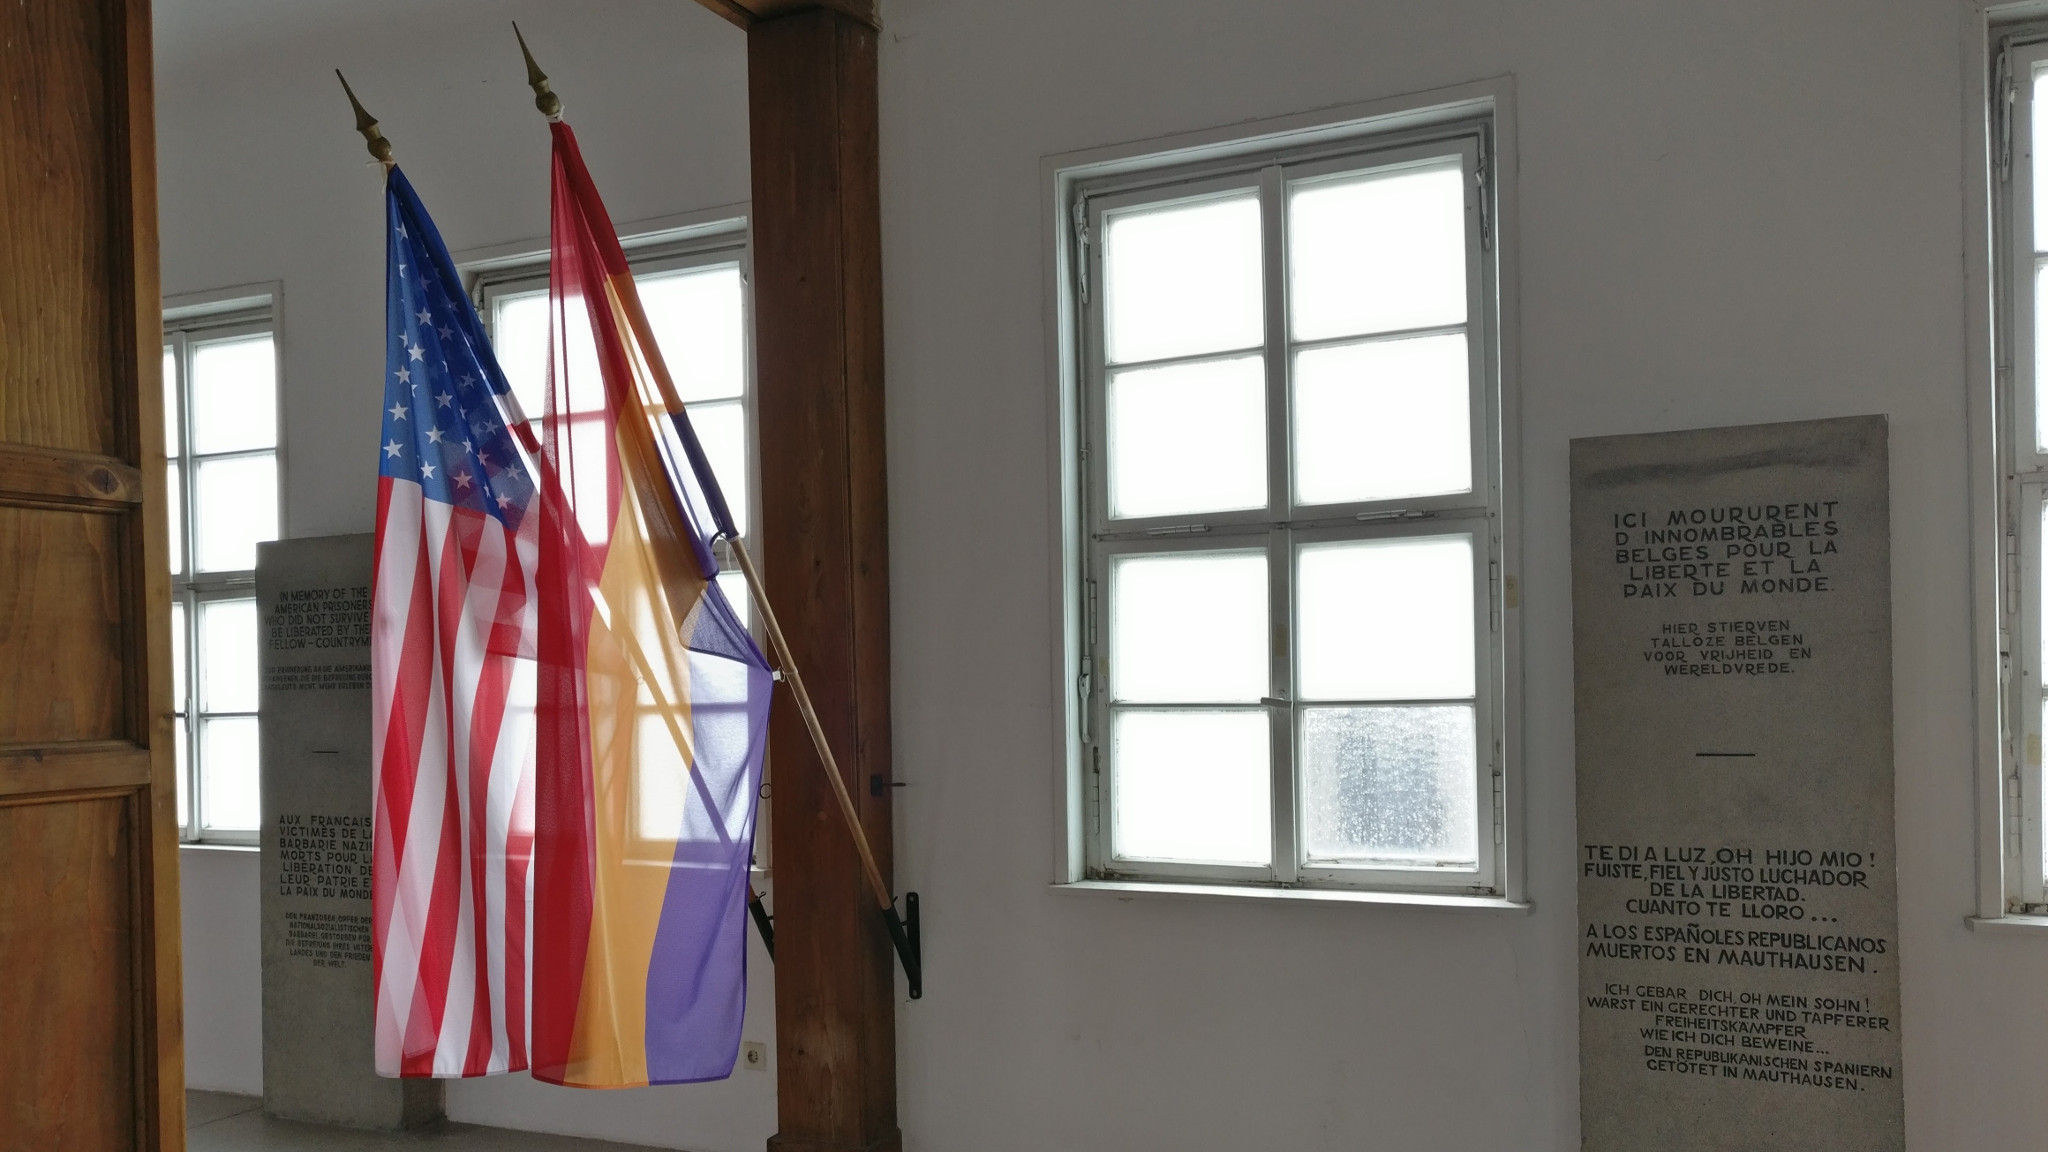 Spanish Second Republic flag in Mauthausen